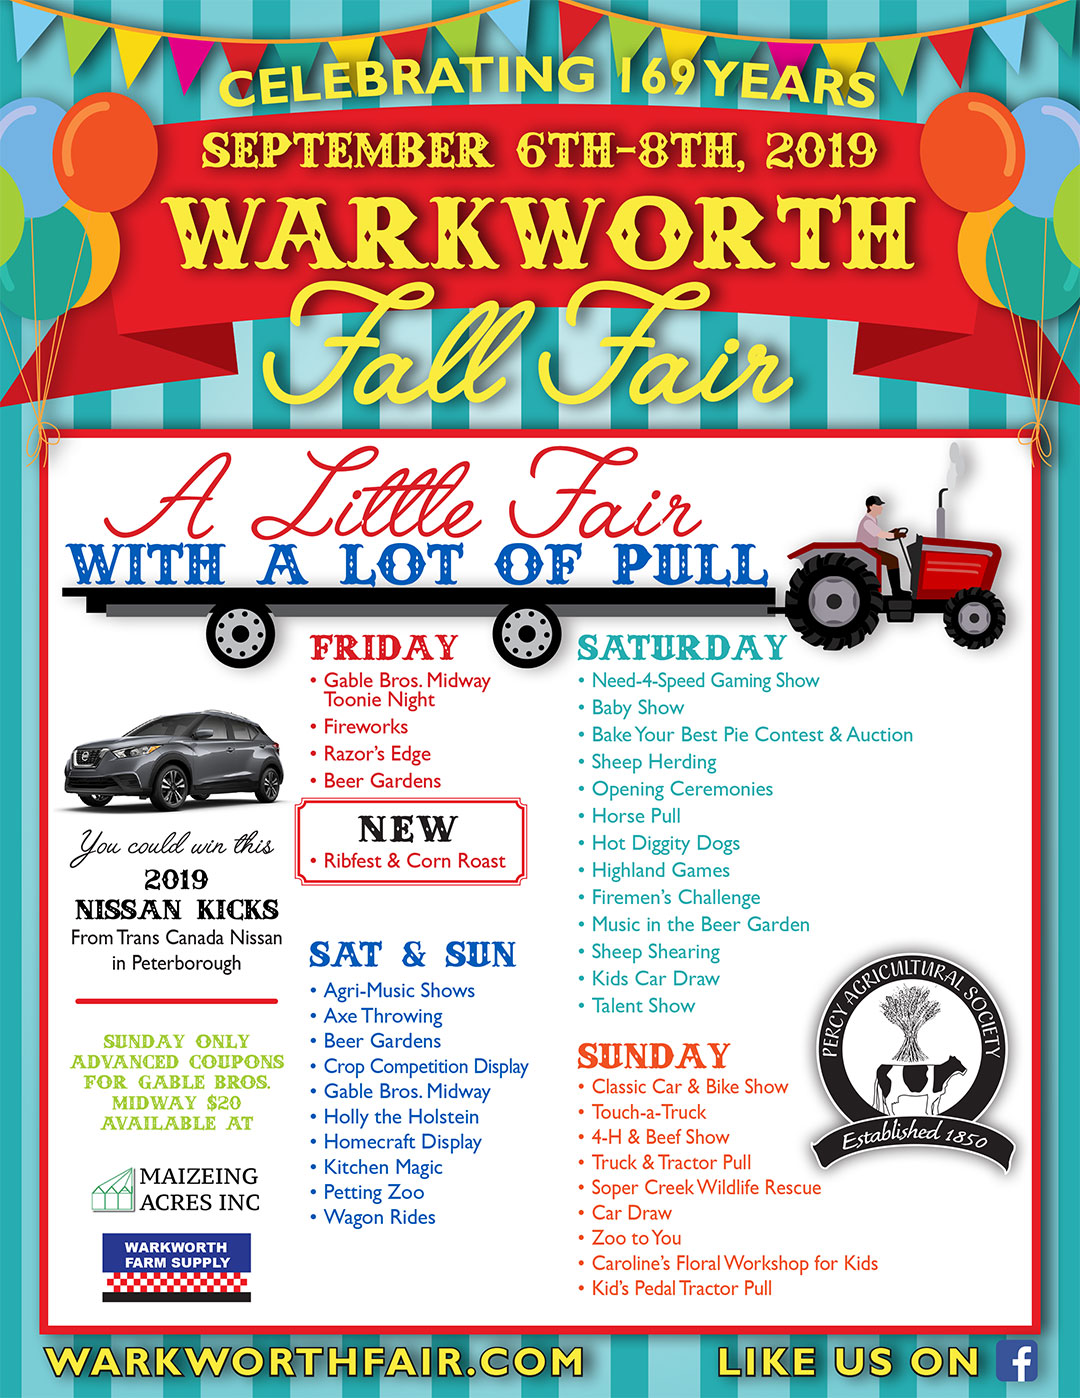 2019 Warkworth Fall Fair, Sept 6 to 8, 2019, A Little Fair with a Lot of Pull